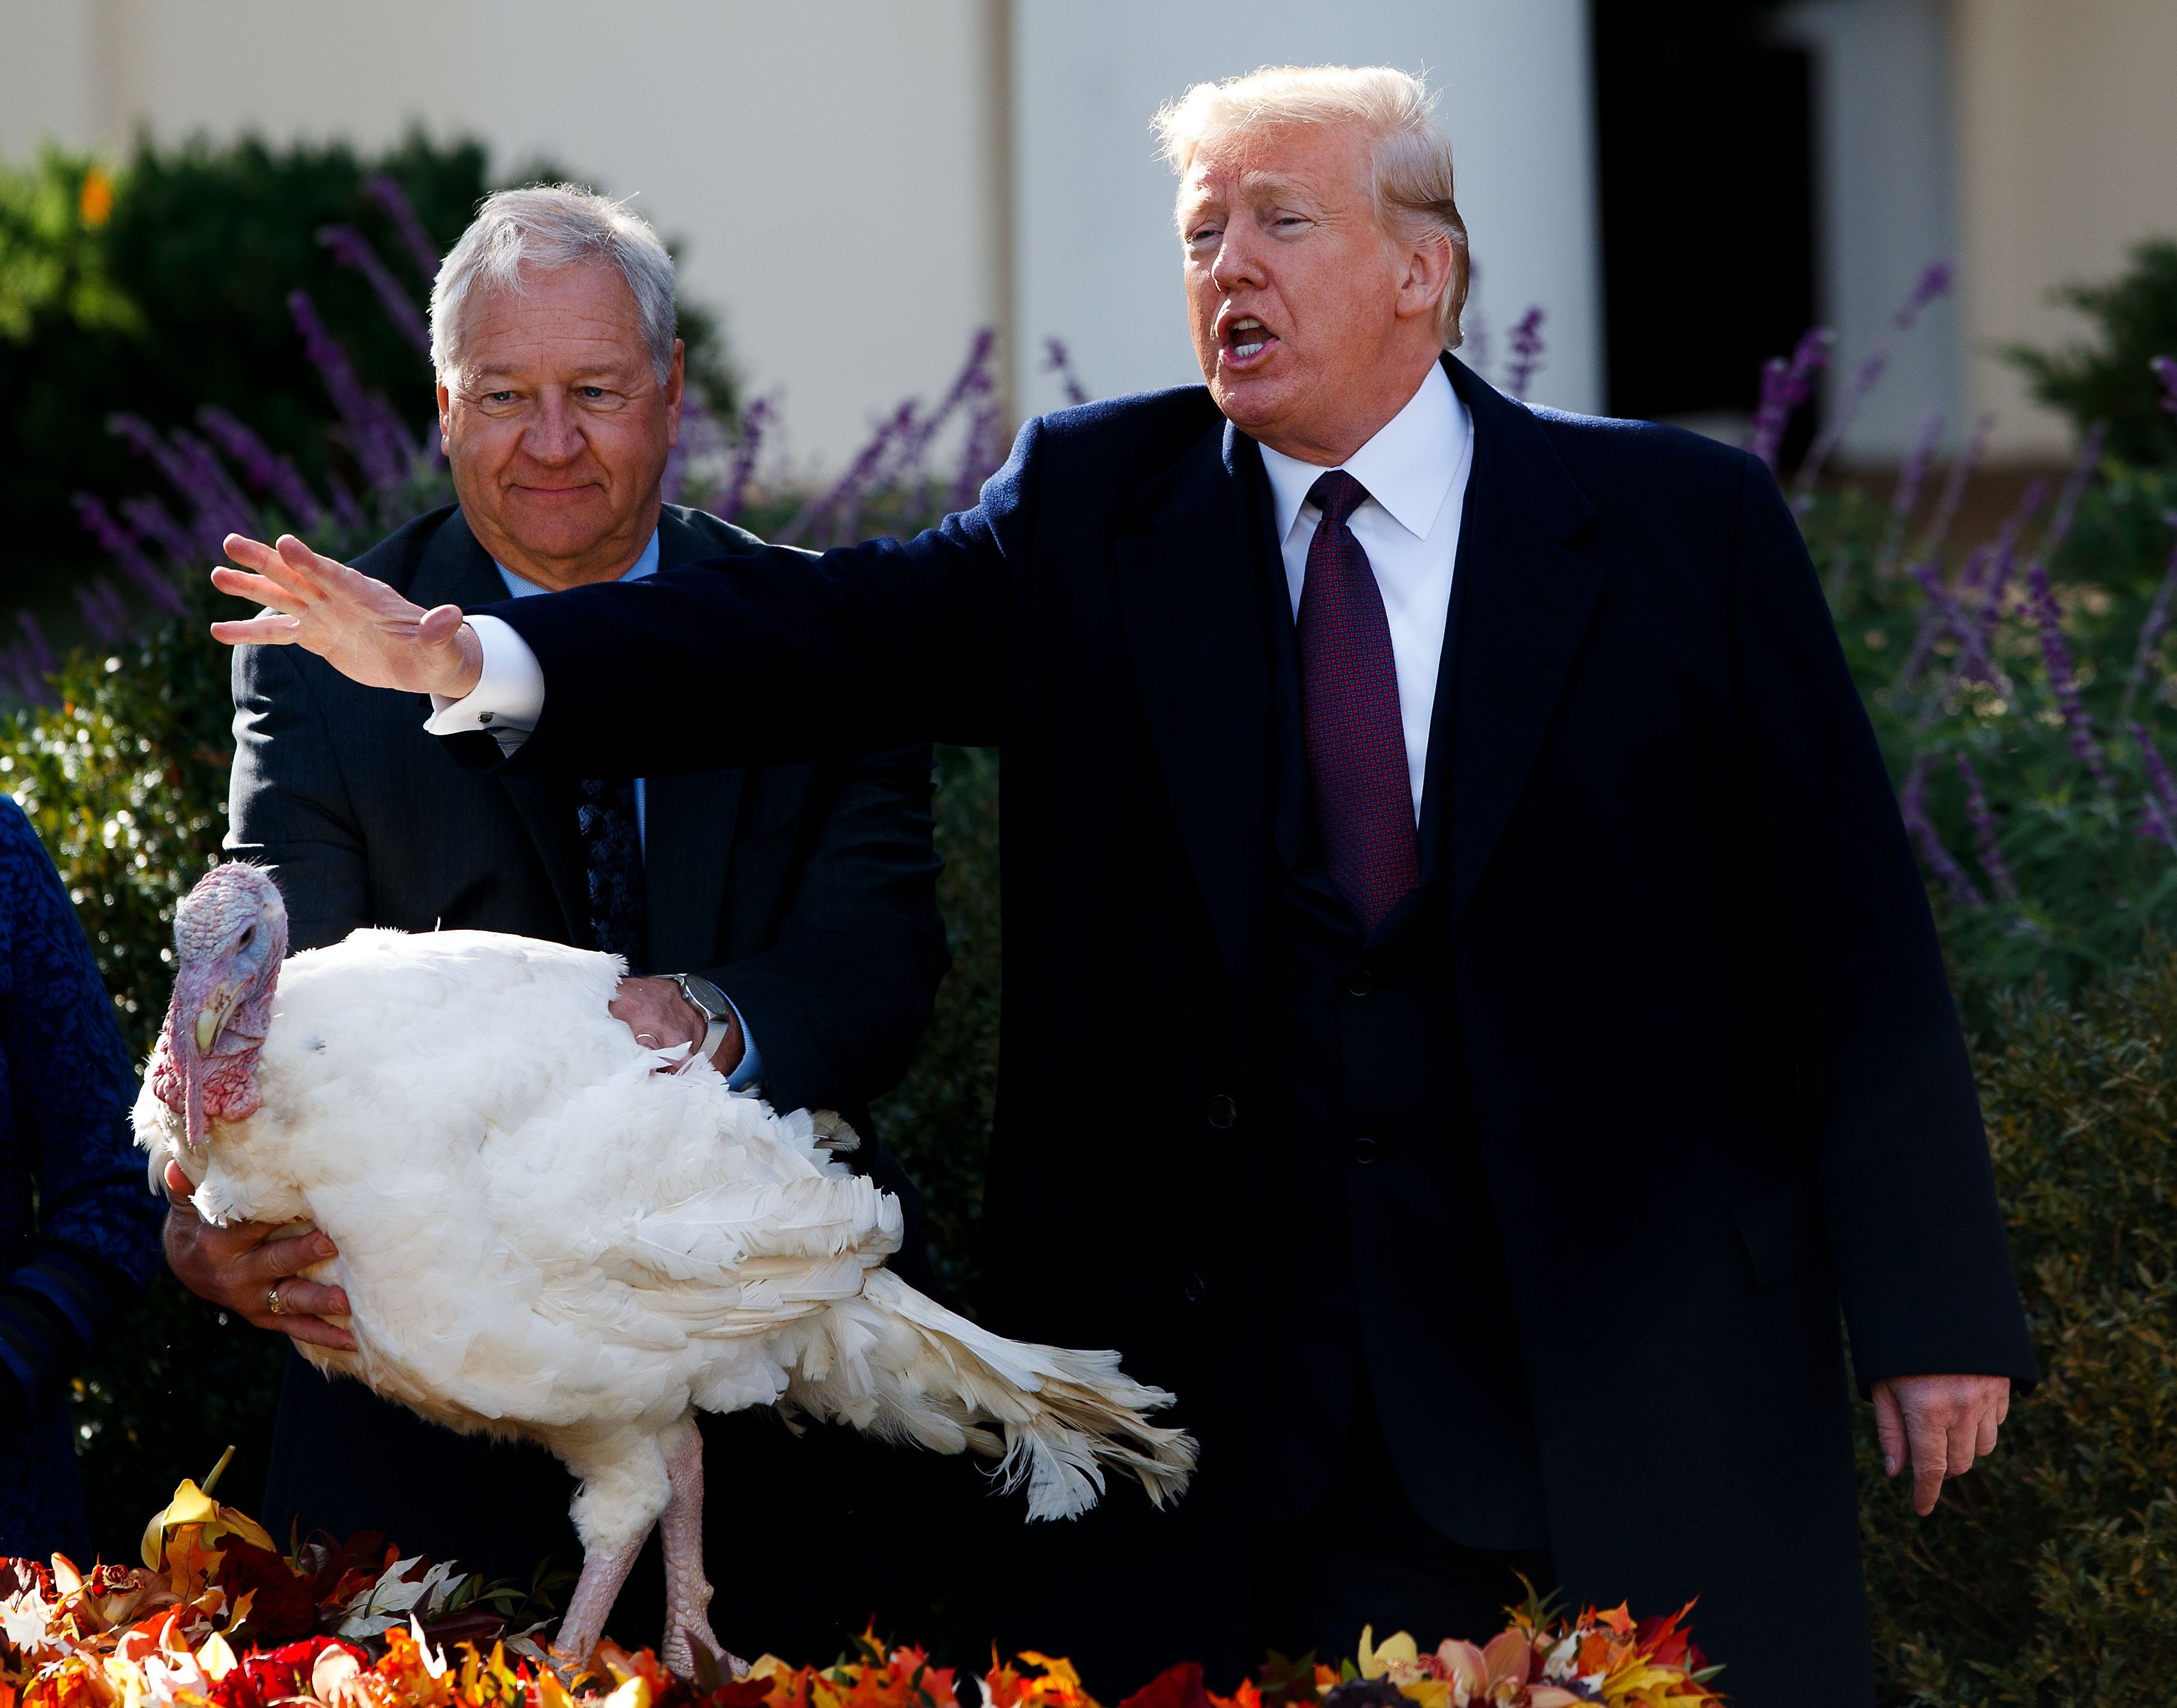 Trump Jokes About Midterms and Democrats At Turkey